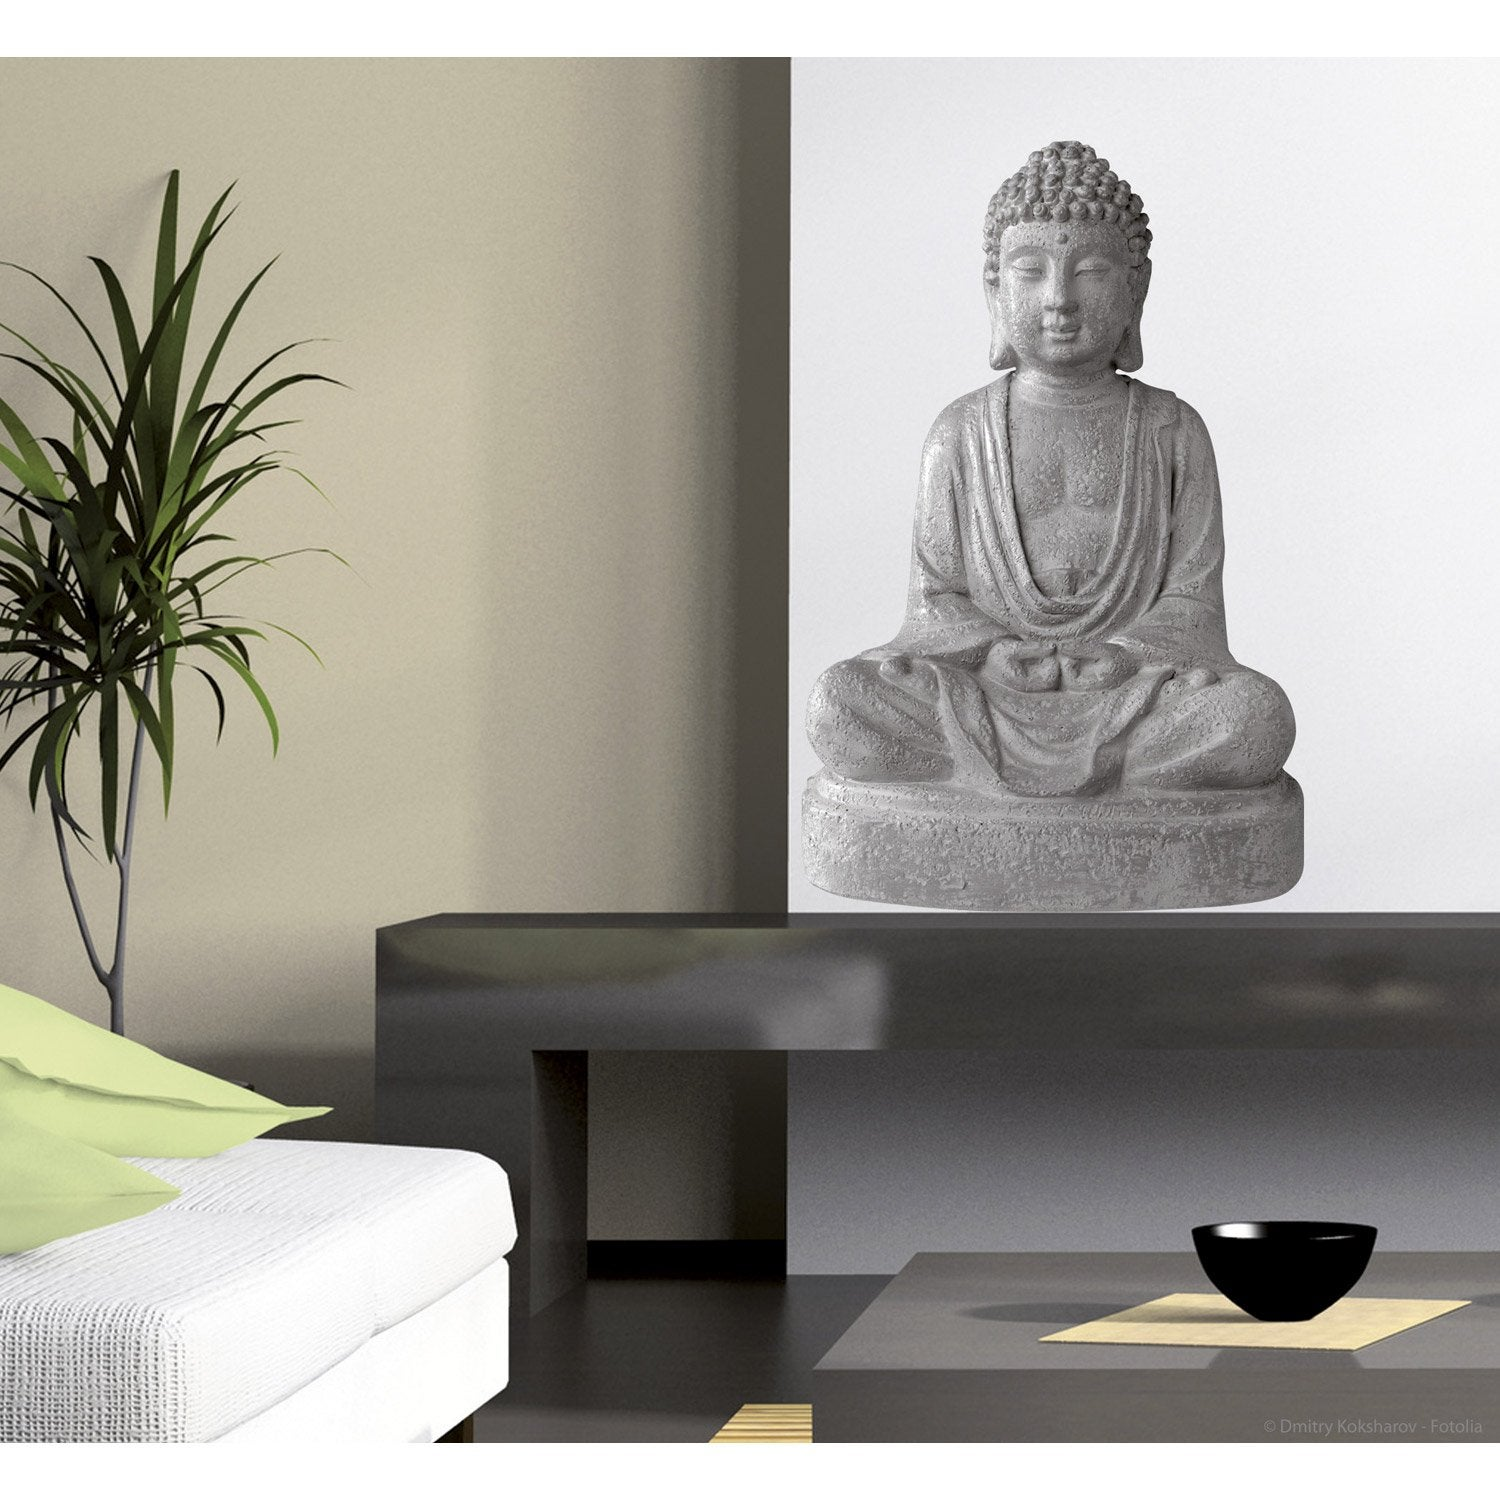 Sticker bouddha 48 cm x 68 cm leroy merlin for Peinture salon zen